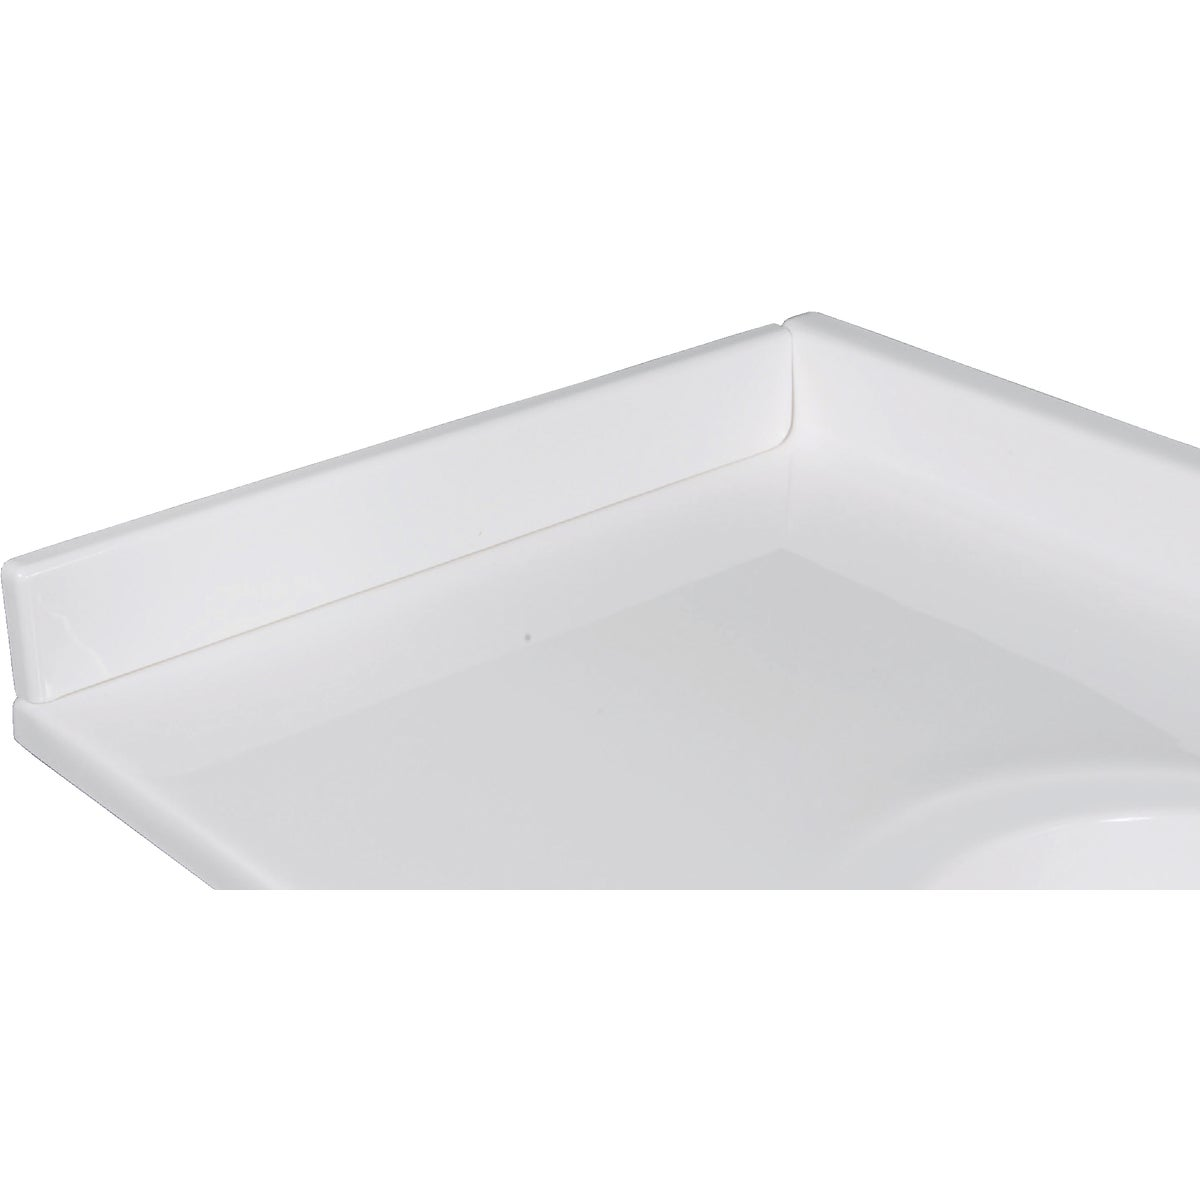 "22"" WHT LEFT SIDE SPLASH - VL100SPW by Imperial Marble Corp"